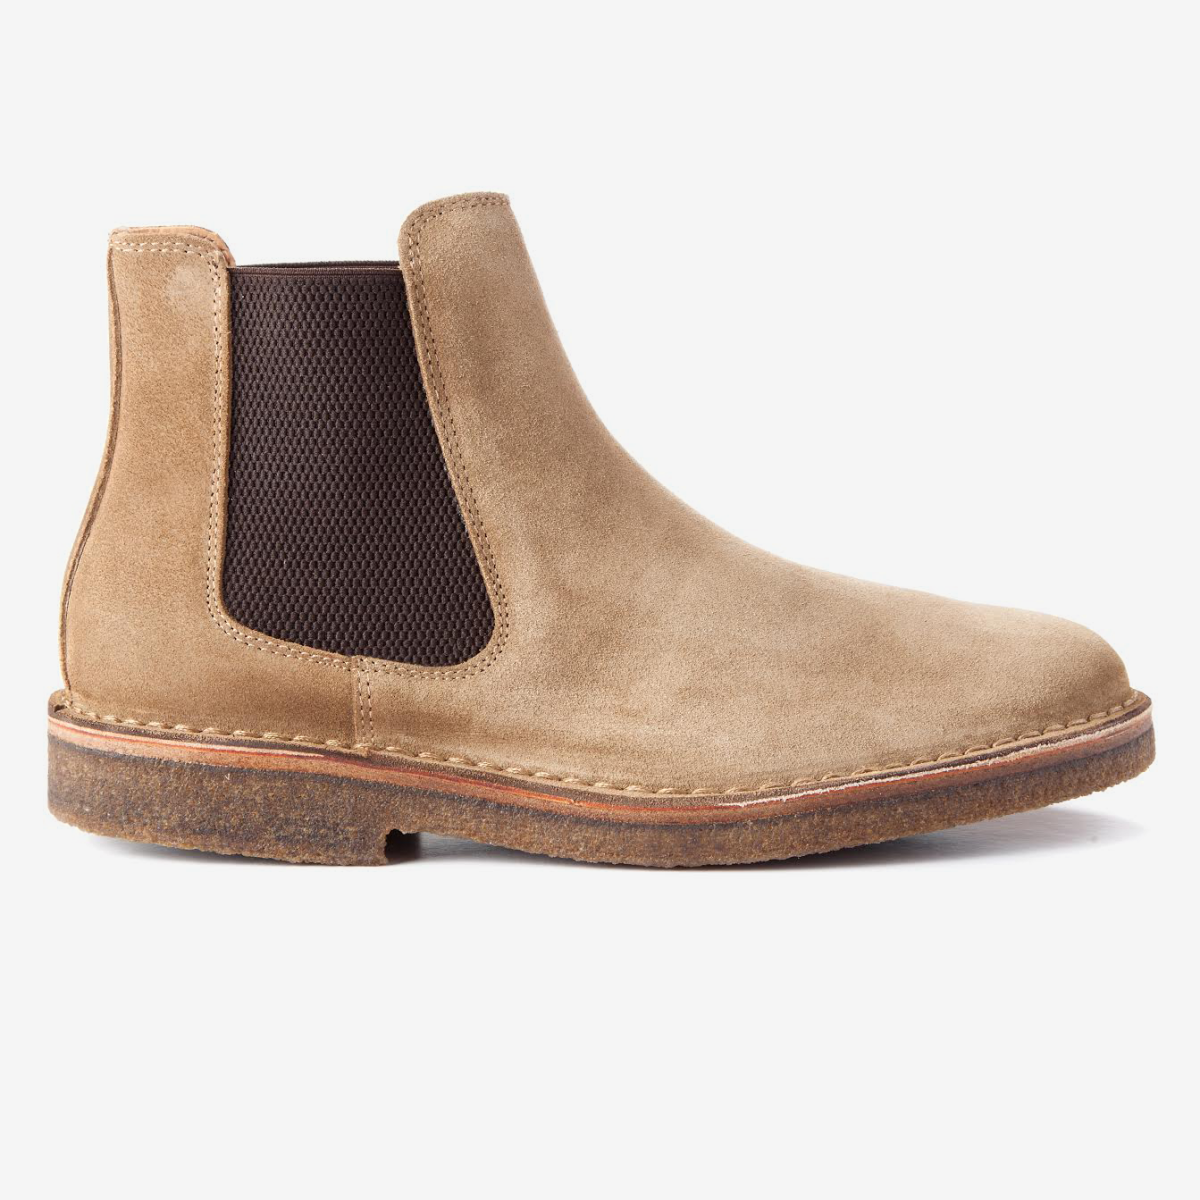 These Italian Made Chelsea Boots are the Most Comfortable